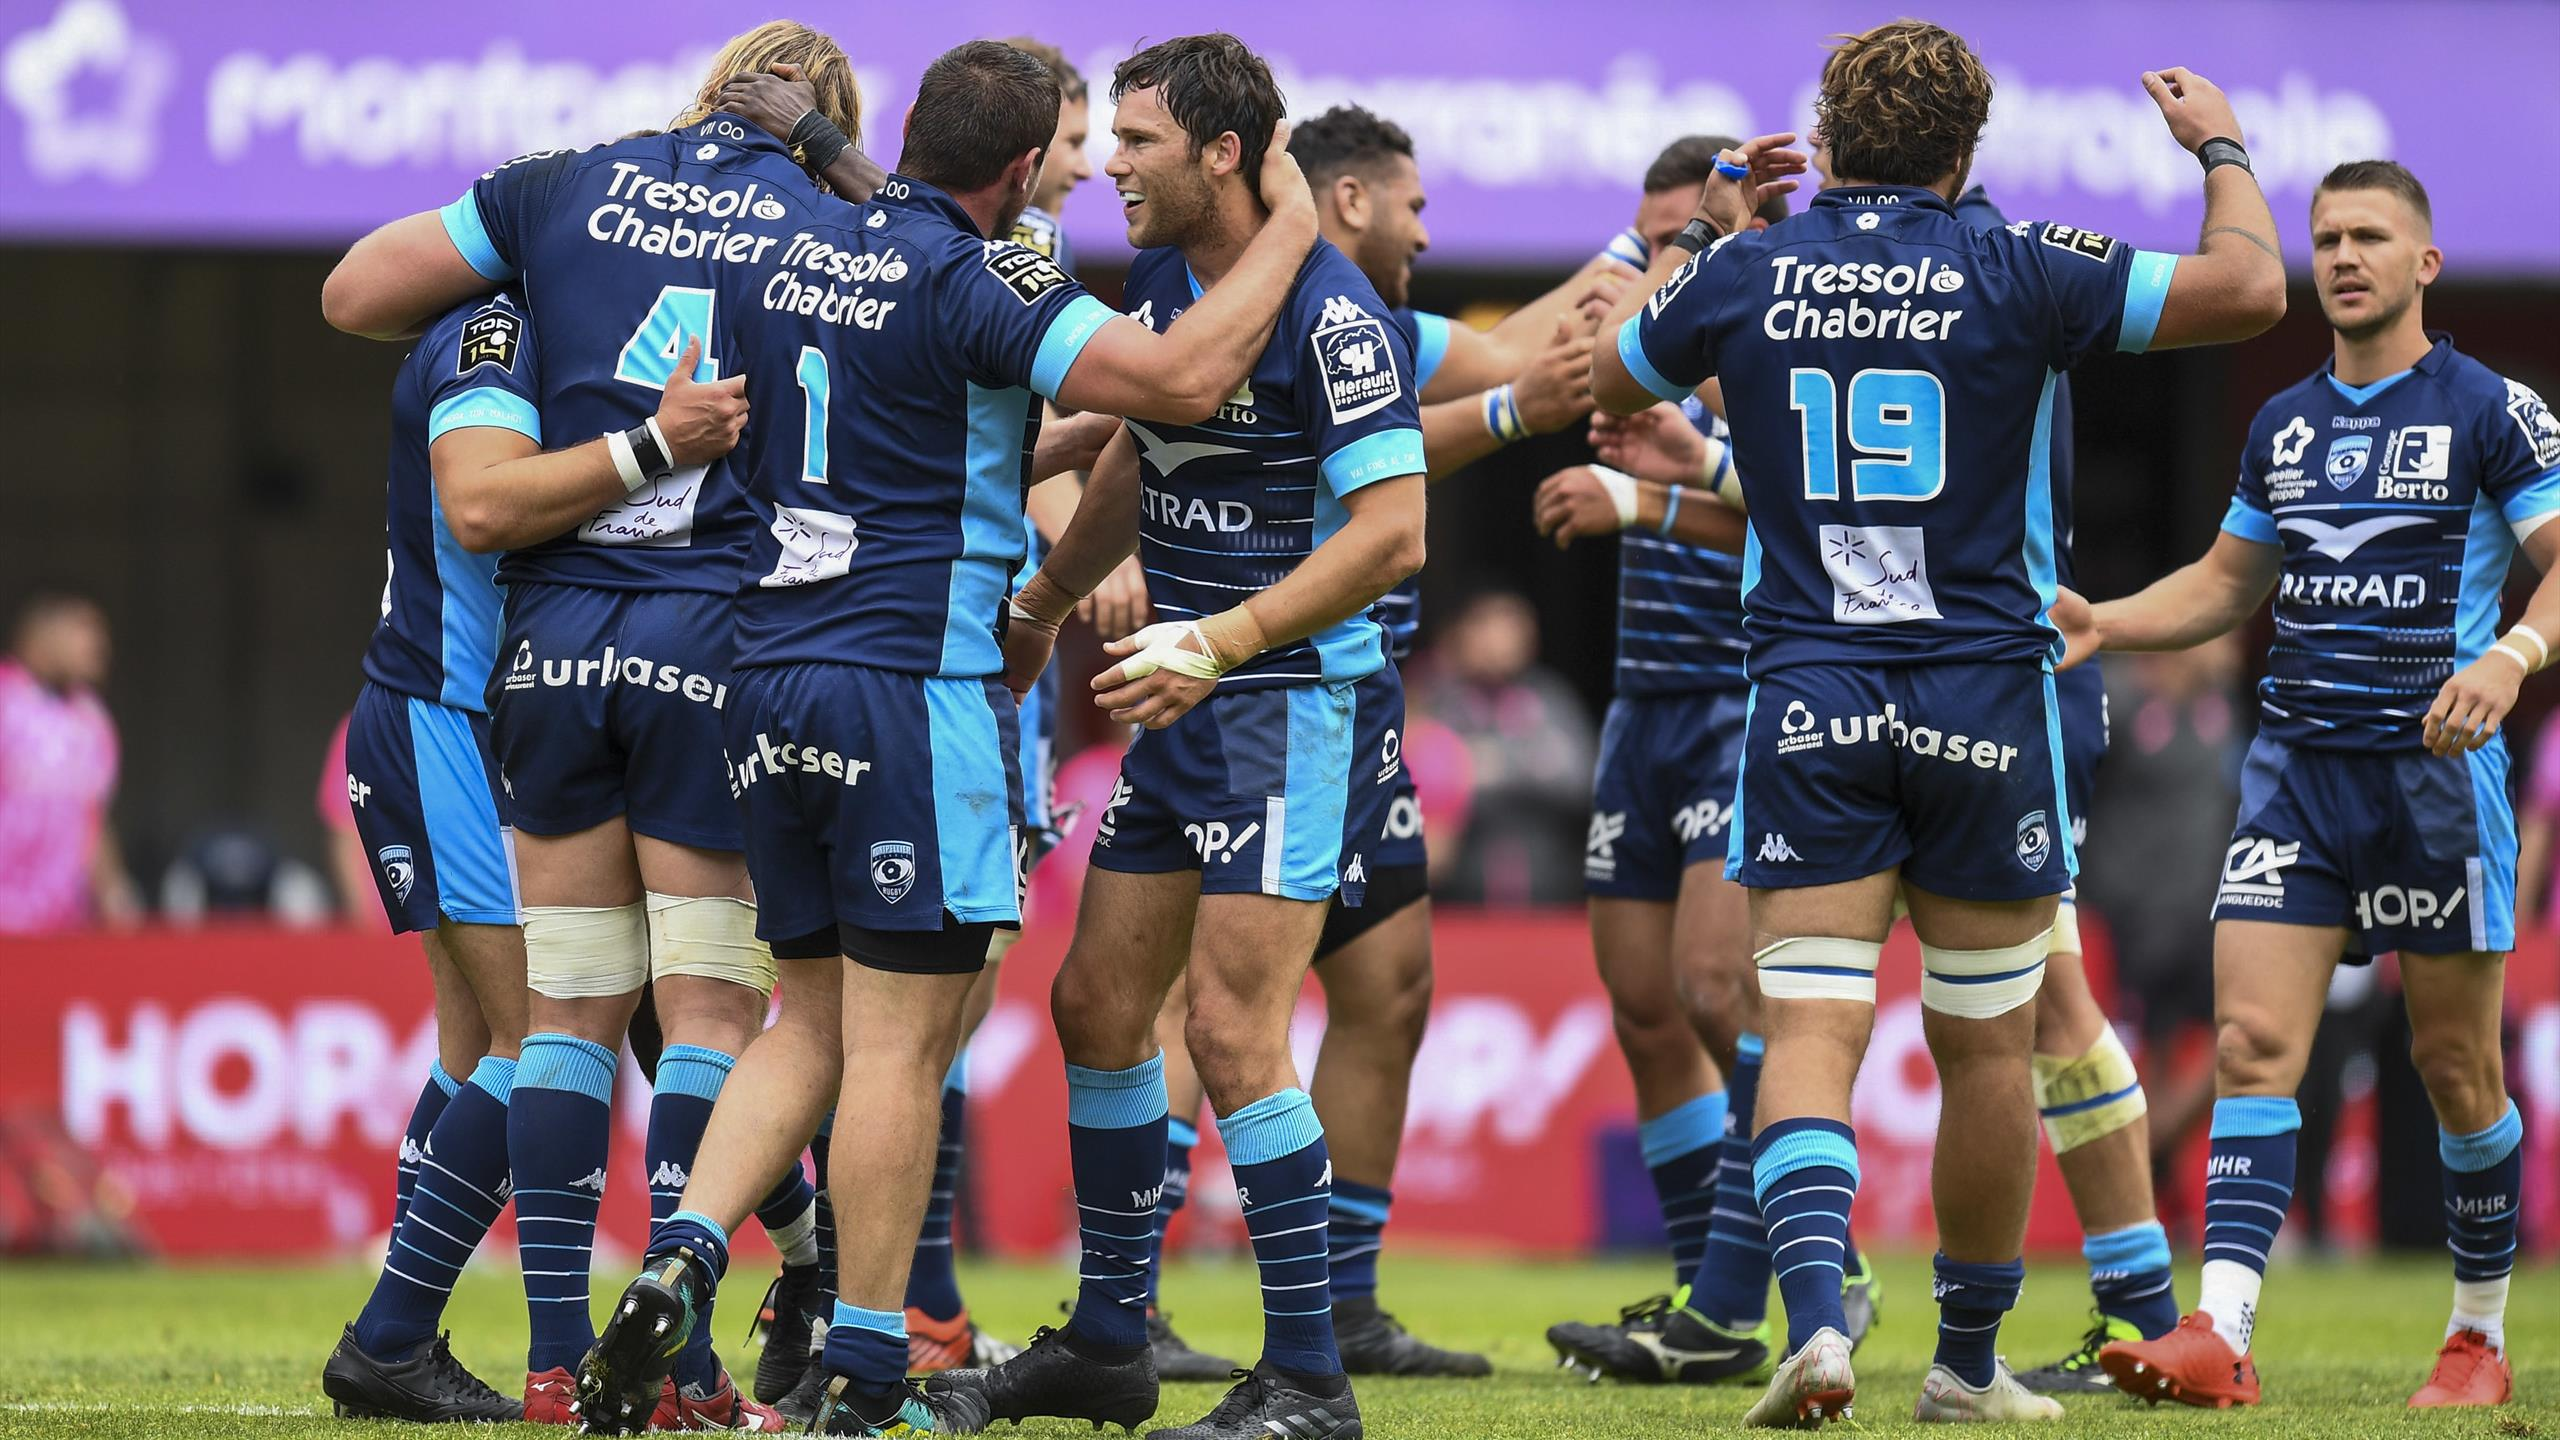 Montpellier Rugby Calendrier.Top 14 Montpellier Les Irreductibles Top 14 2018 2019